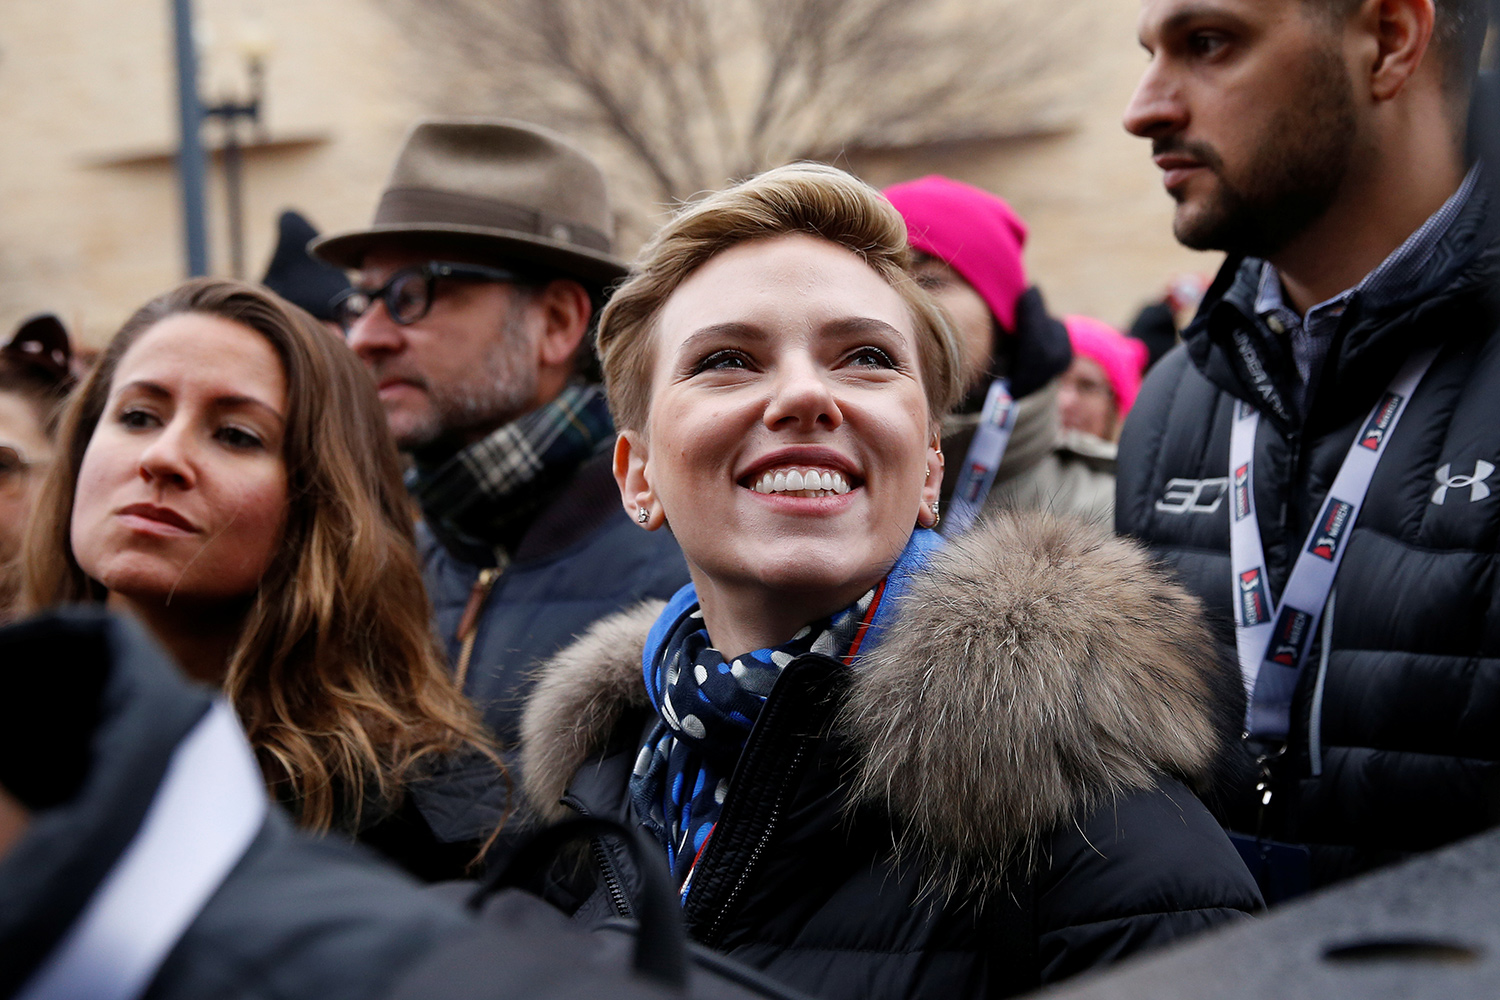 Actress Scarlett Johansson smiles at the Women's March in Washington U.S., January 21, 2017. REUTERS/Shannon Stapleton - RTSWQCF